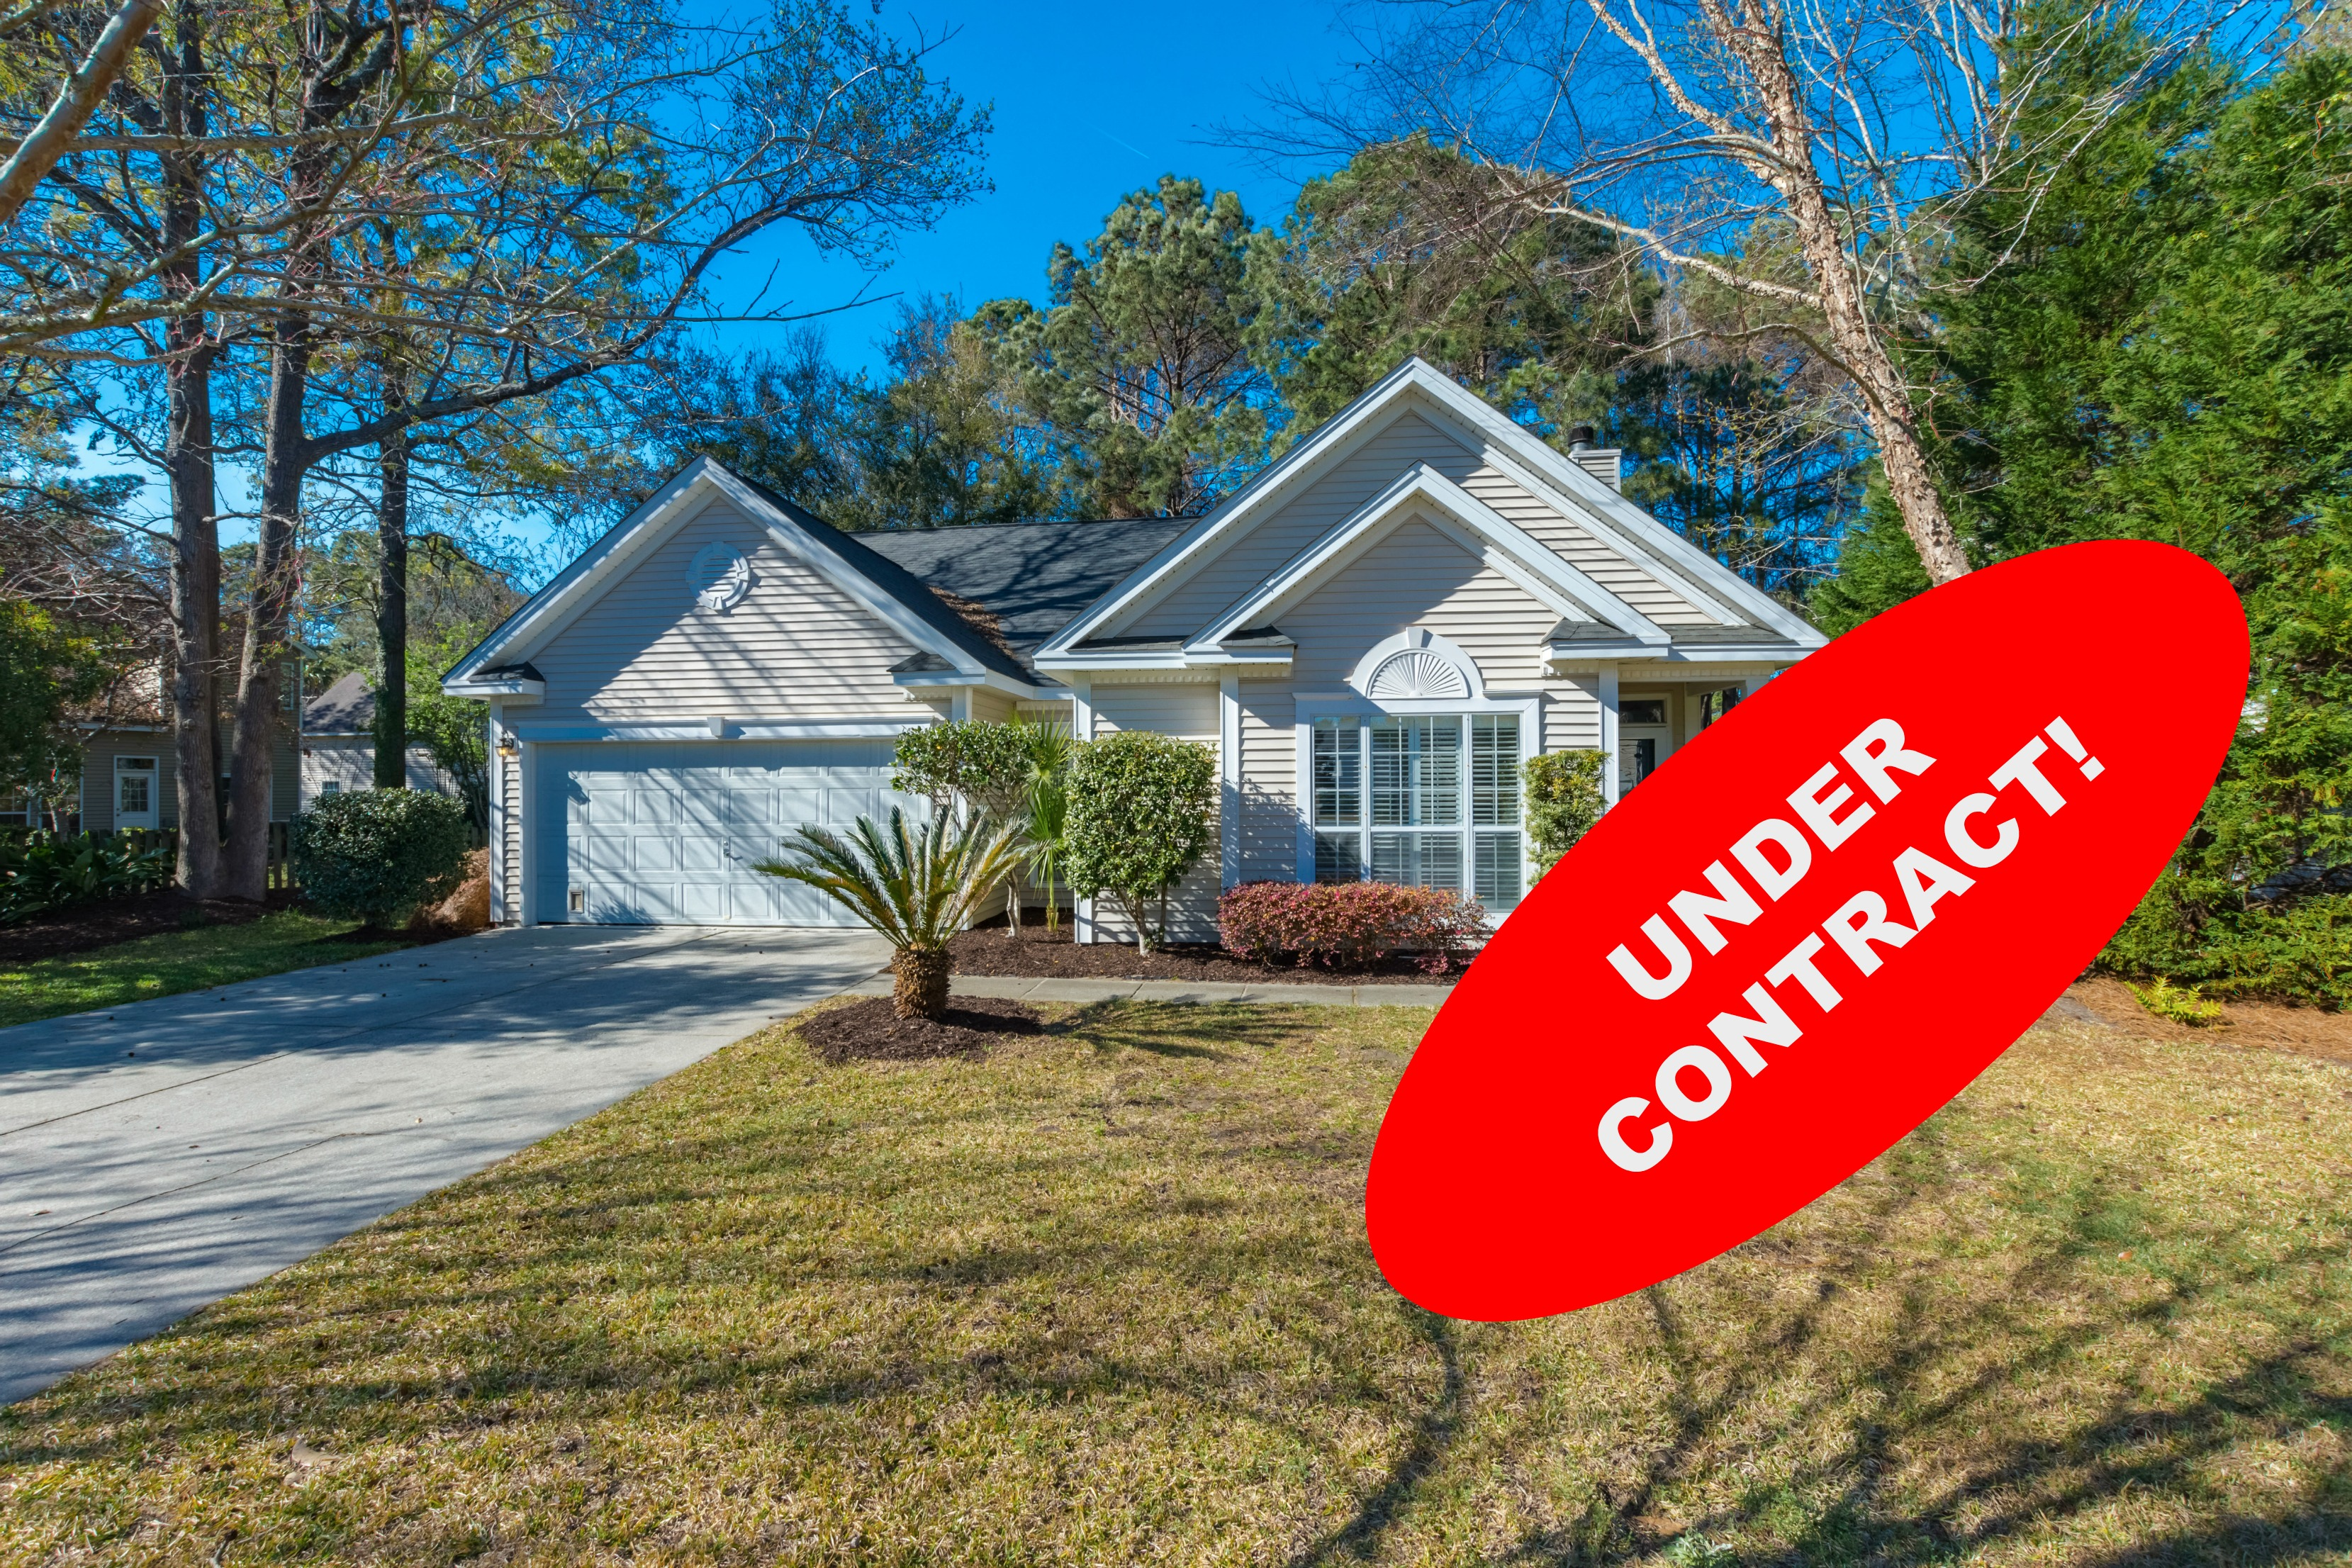 570 Pritchards Point Dr. - UNDER CONTRACT in 5 DAYS!